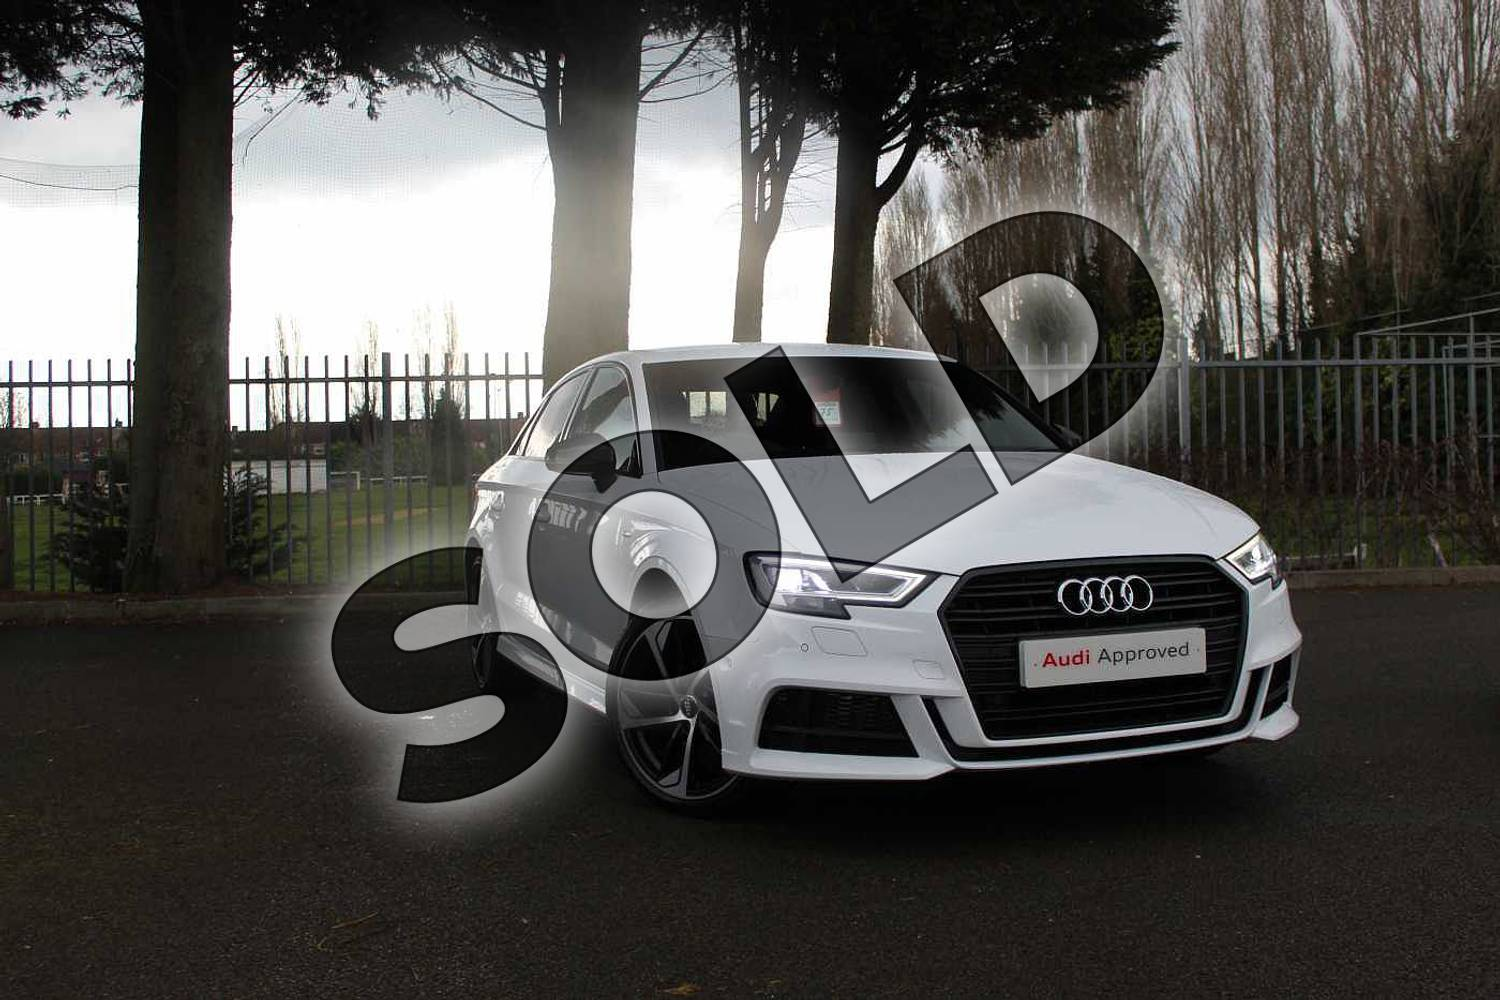 2019 Audi A3 Diesel Saloon Diesel 30 TDI 116 Black Edition 4dr in Ibis White at Coventry Audi